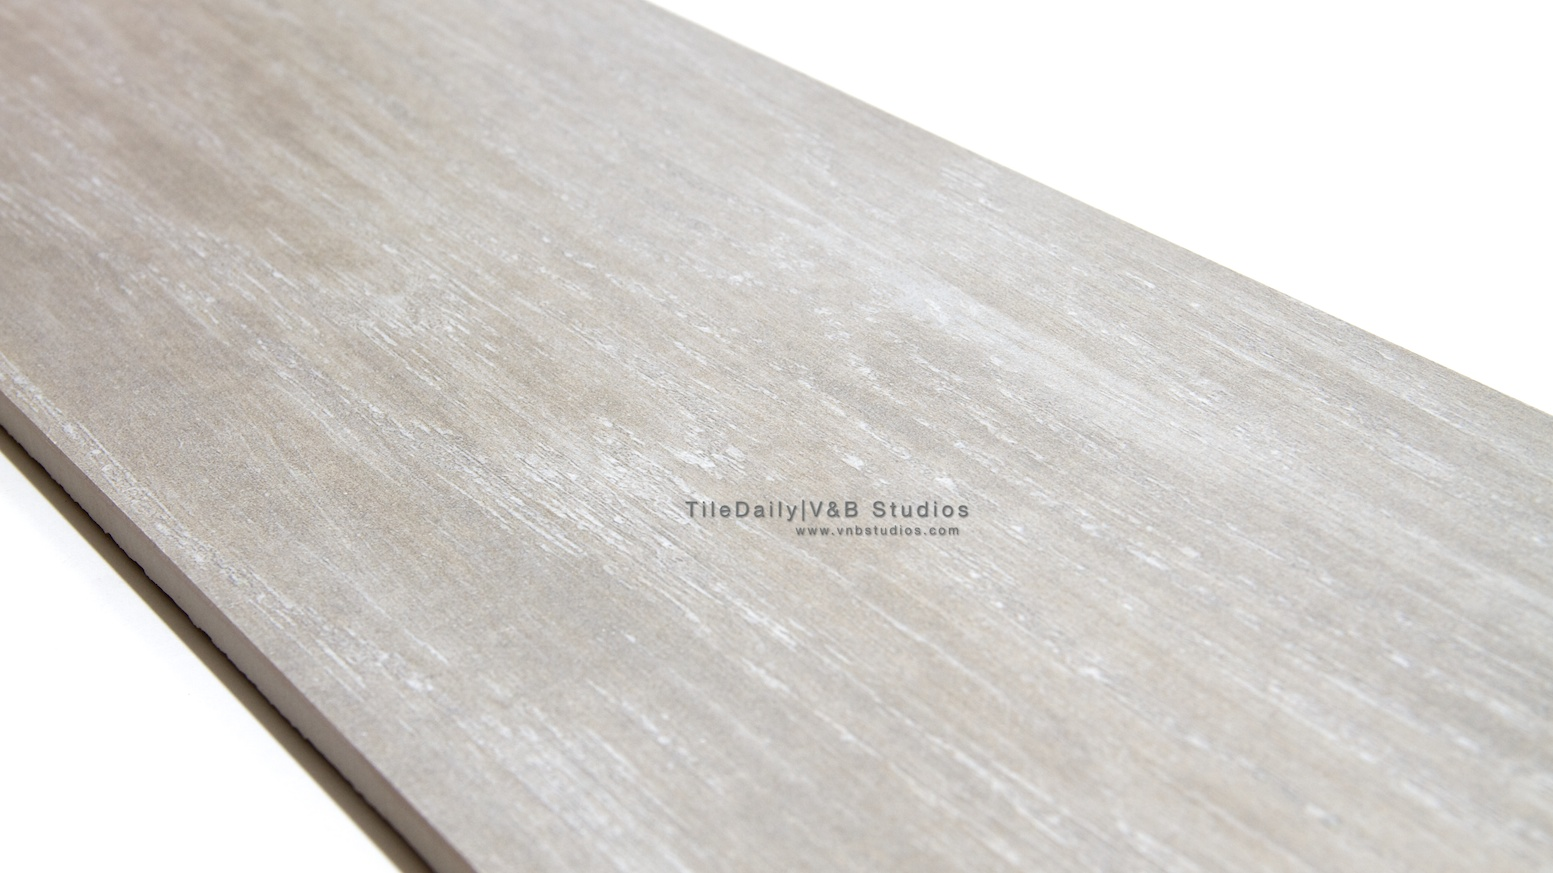 11 at 873 in classic series wood porcelain light colors grey wood tile